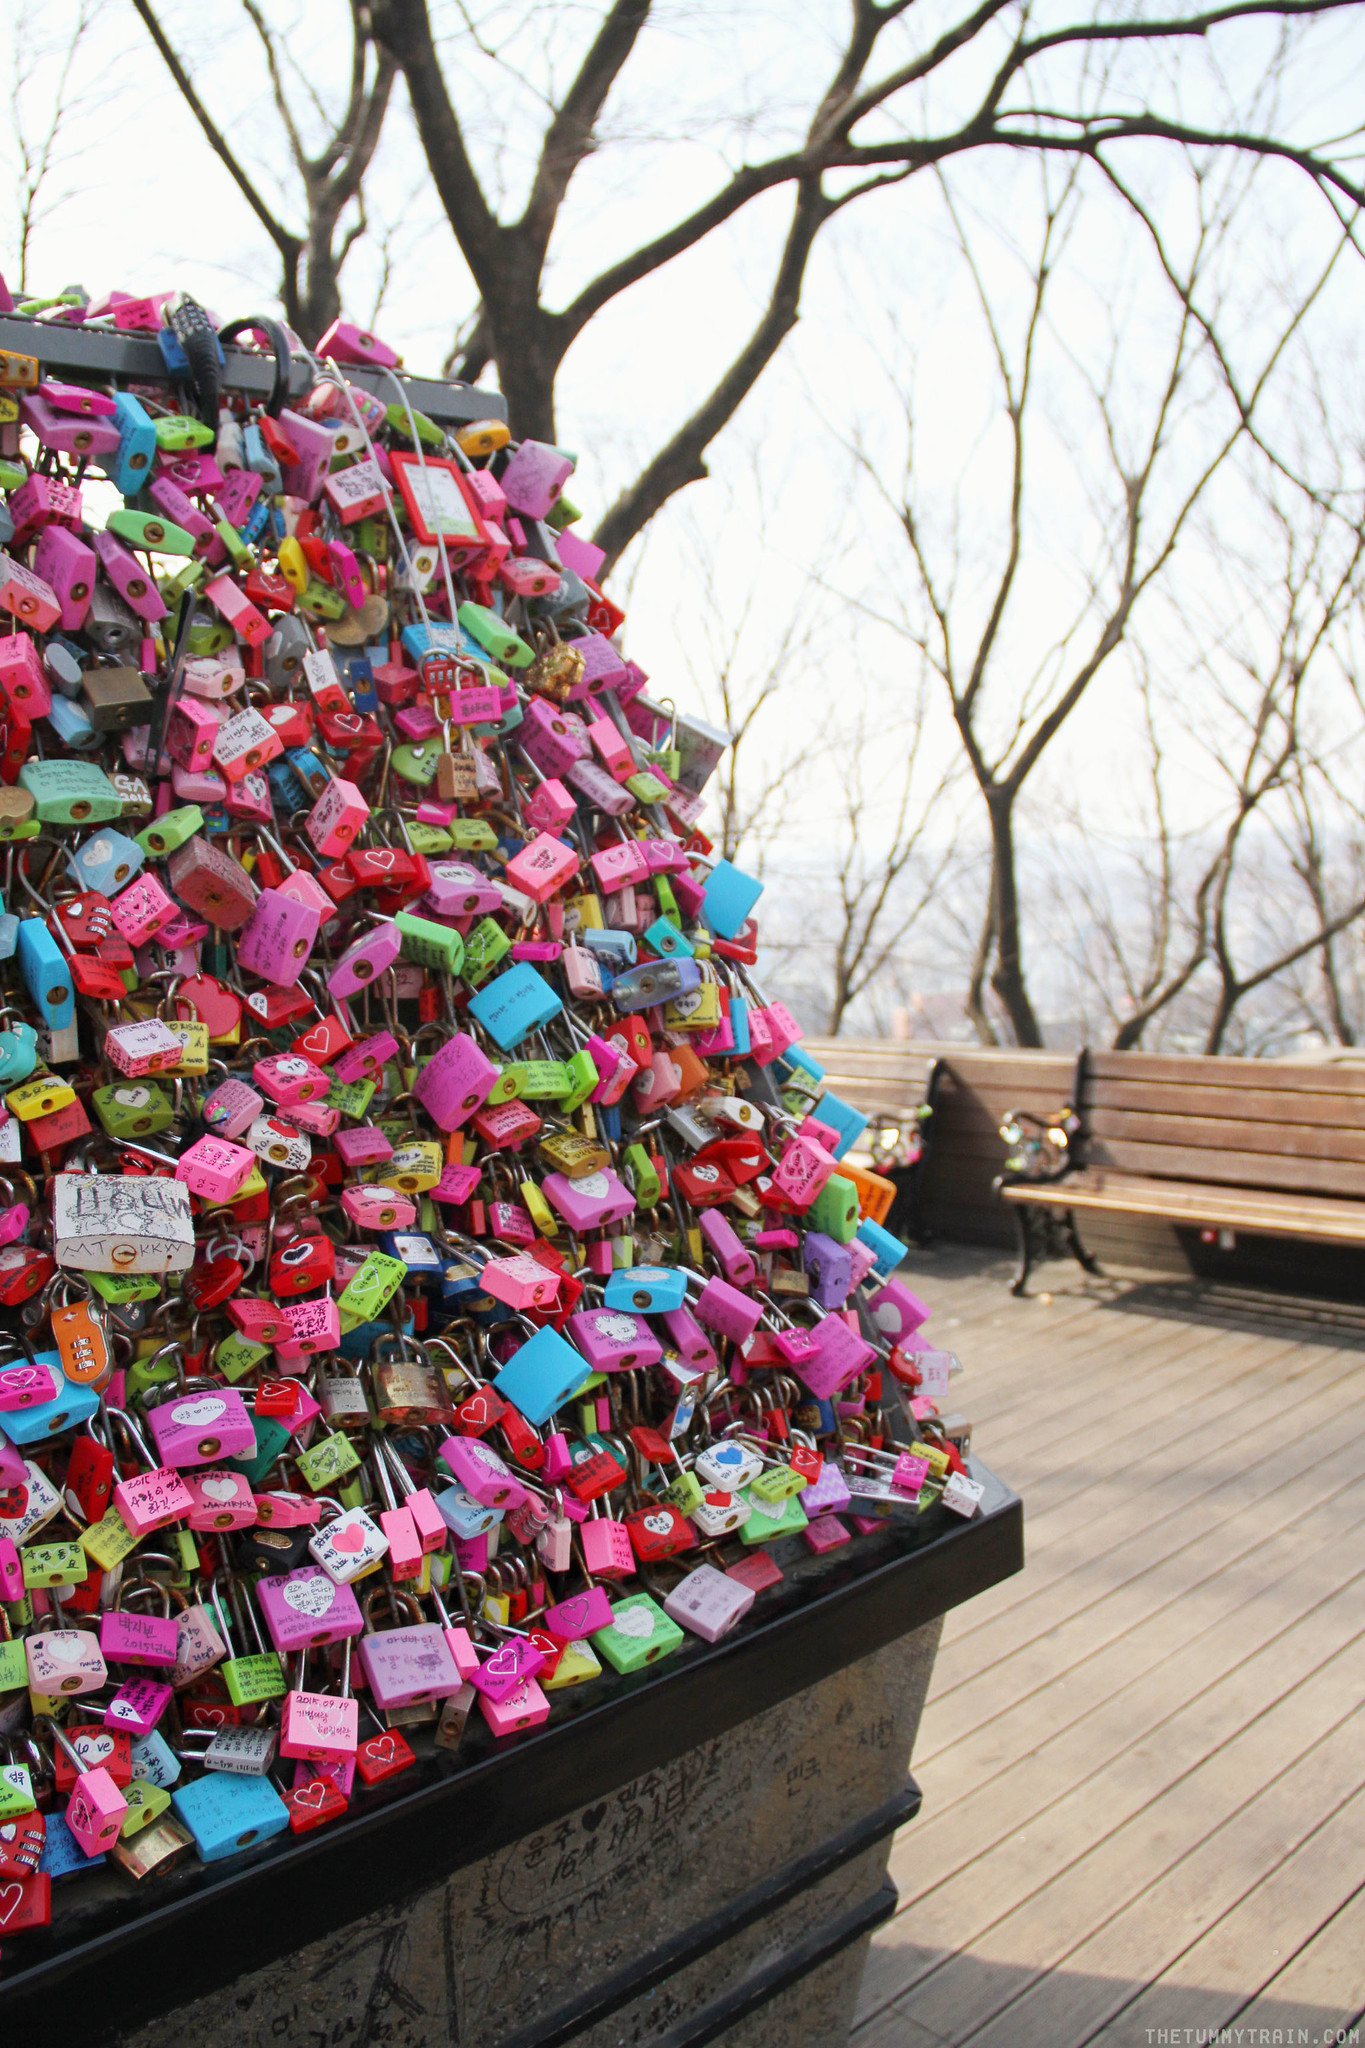 33188230510 6d8e062236 k - Seoul-ful Spring 2016: Playing Lovers in Korea at N Seoul Tower